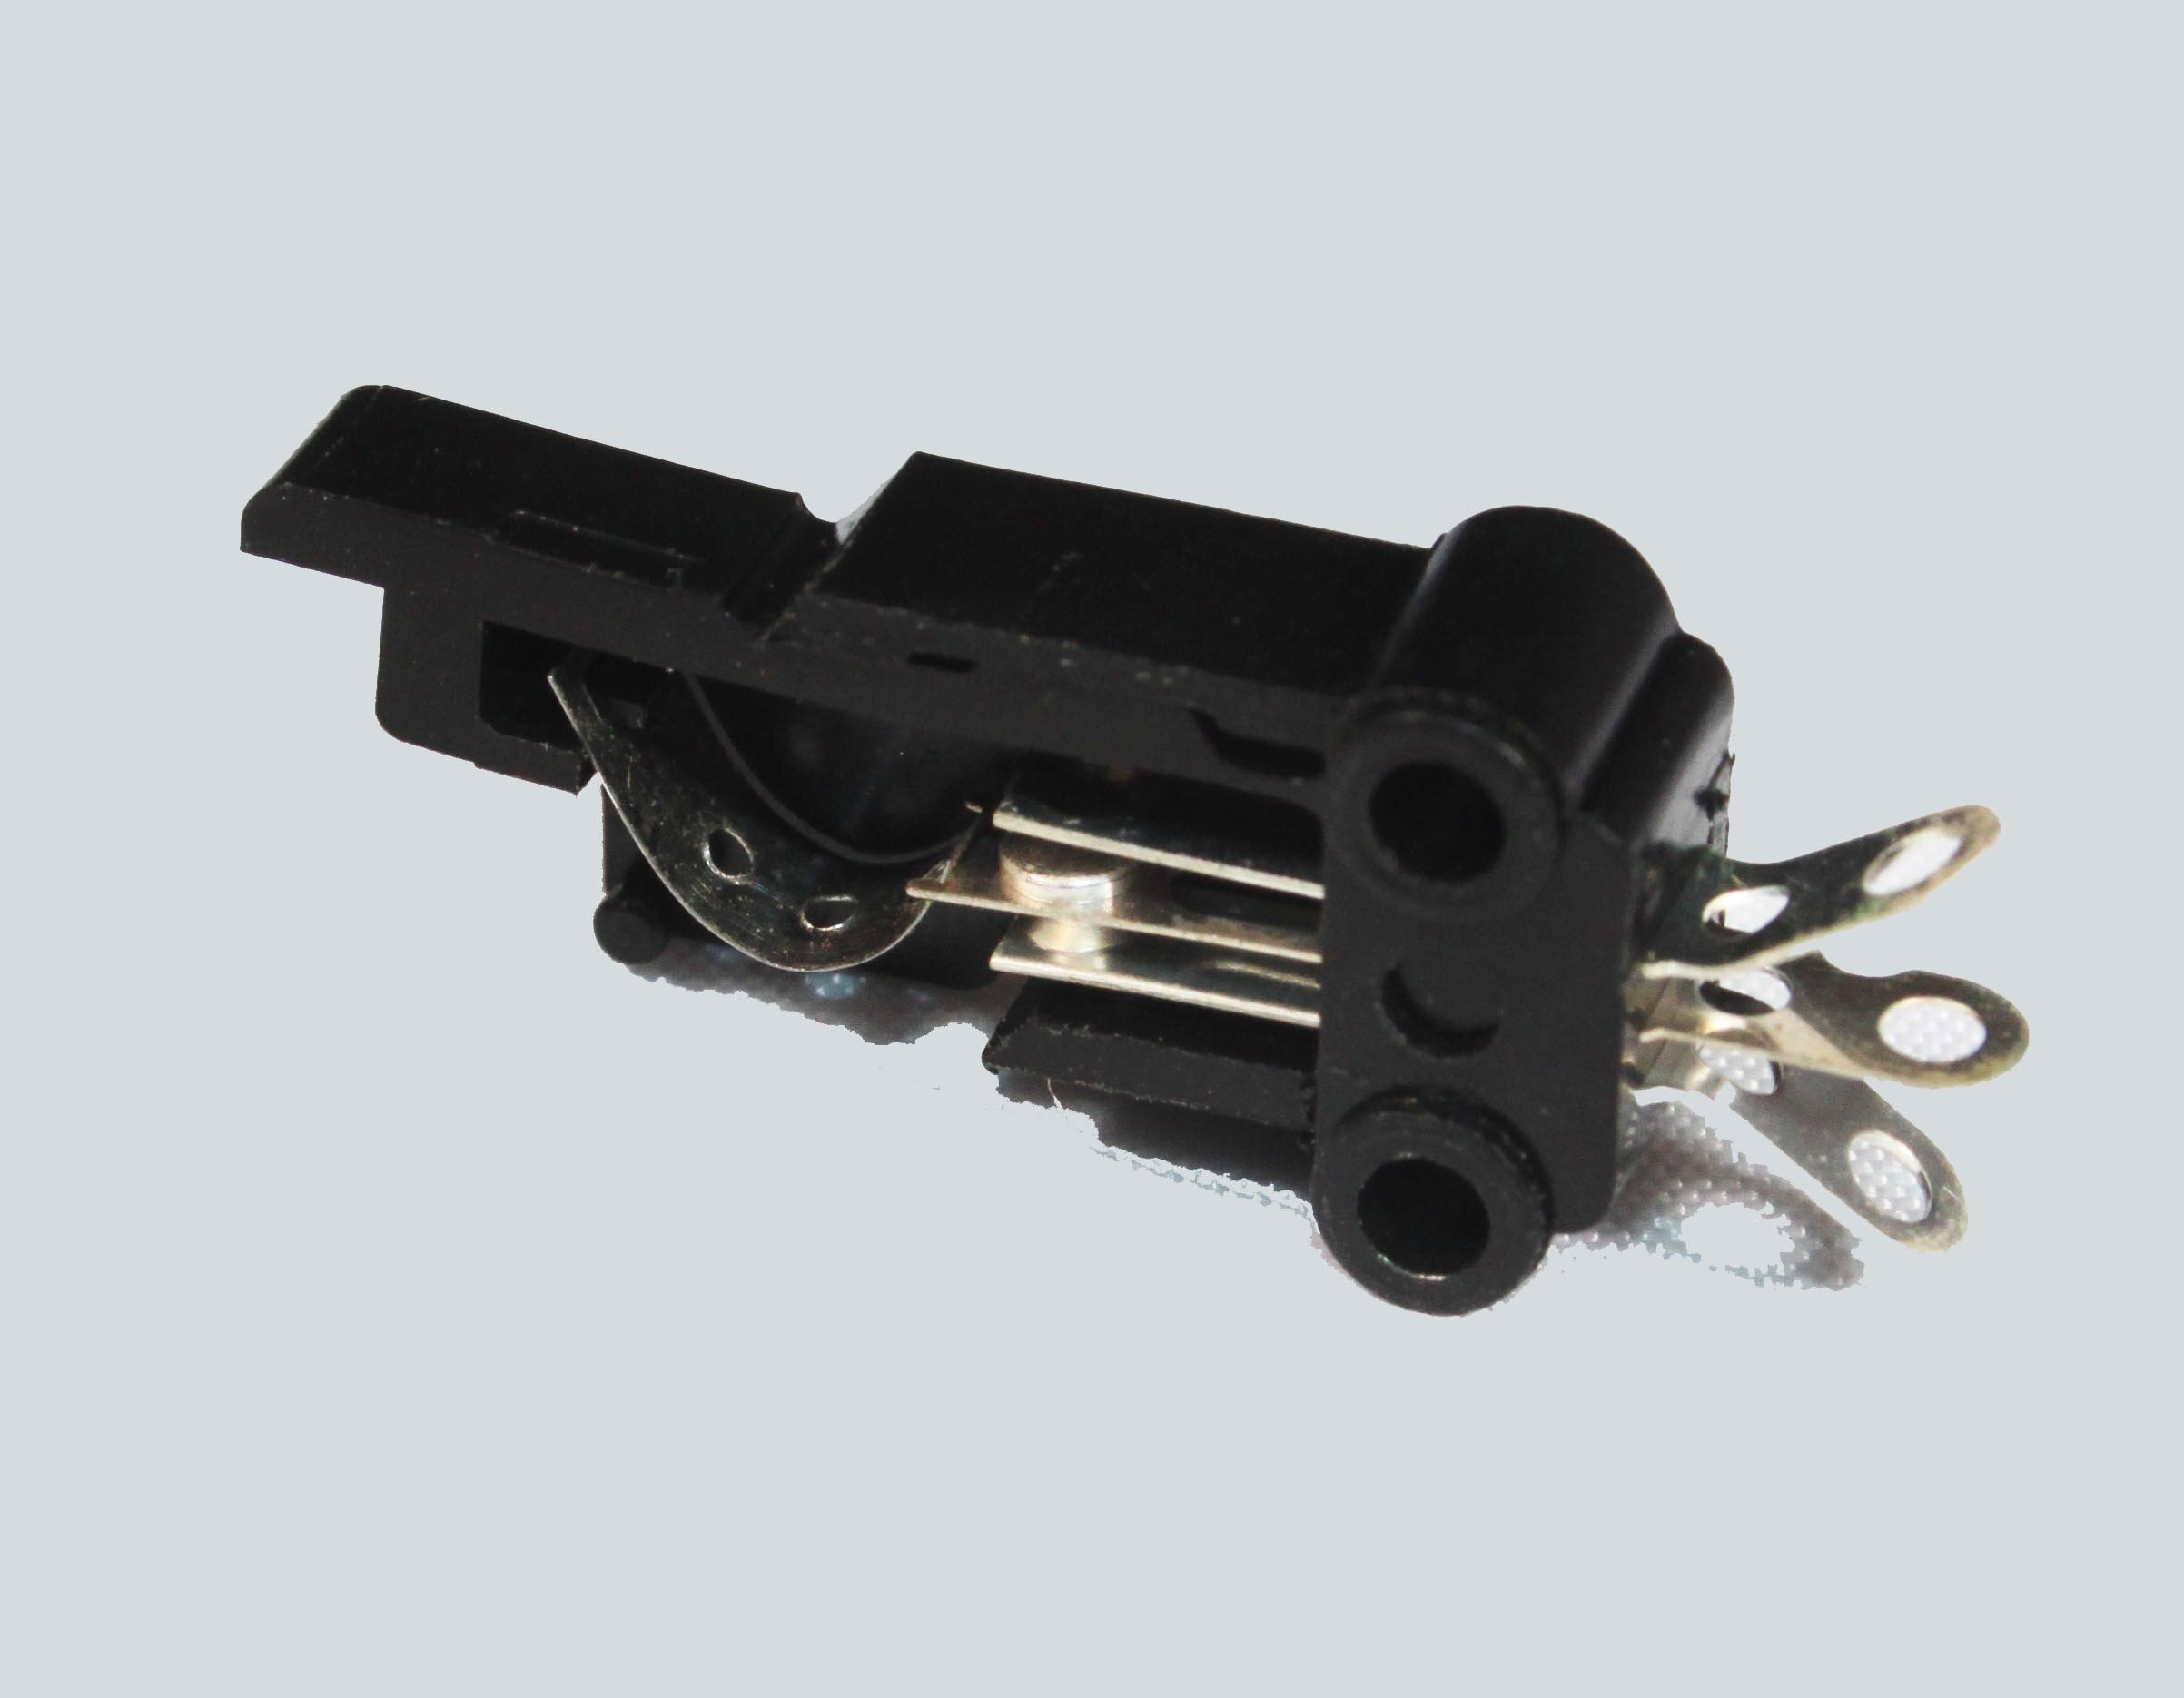 LEAF SWITCH - LARGE - Code: LEAFSL12V 1 Amp; Operating Force: 100g (max)Price: $0.20